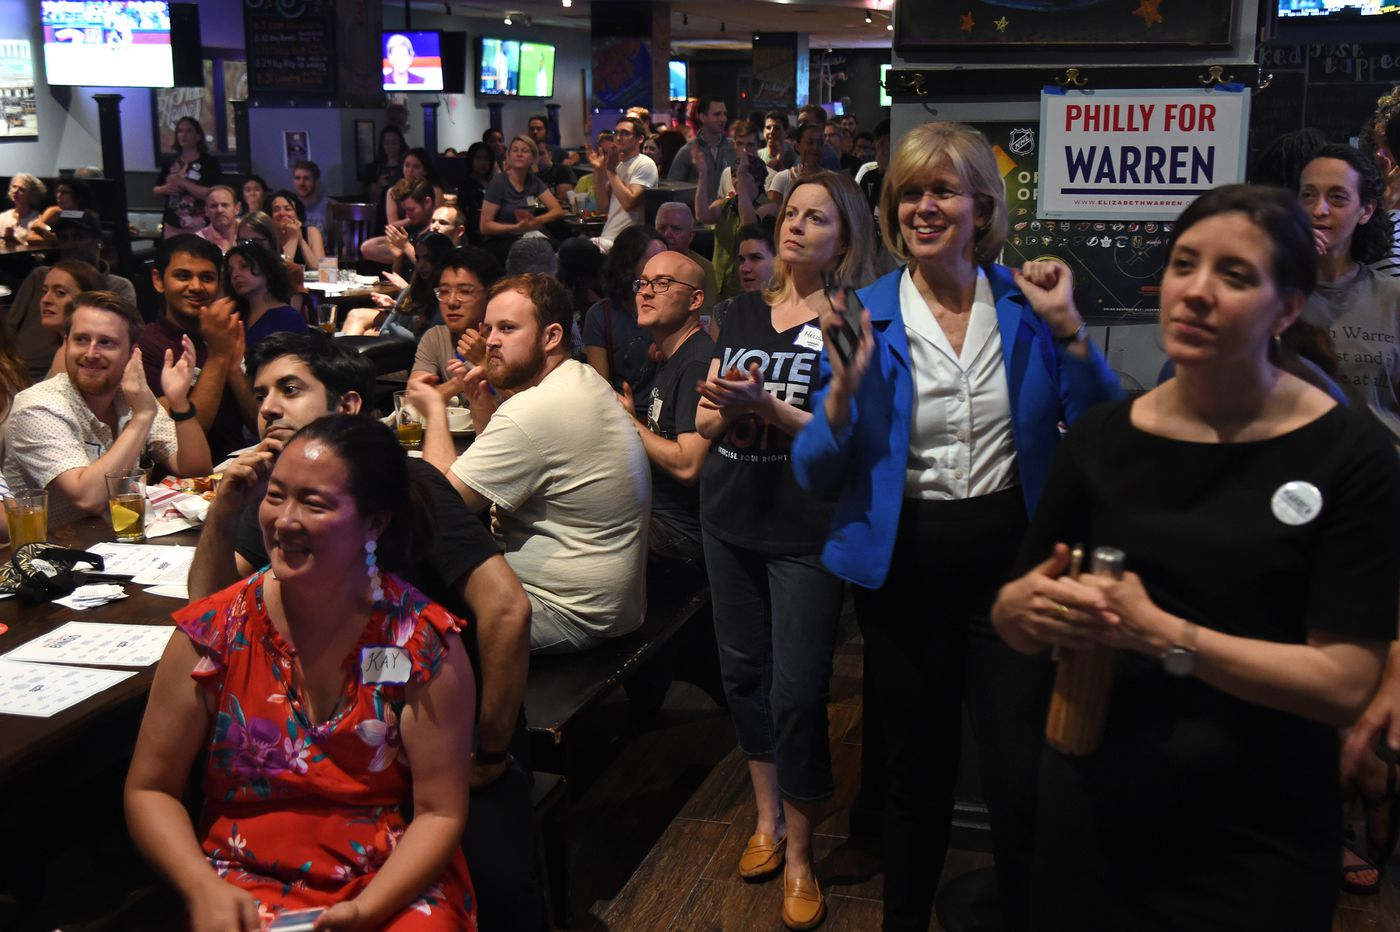 In Philly, Elizabeth Warren supporters watch her take debate's center stage